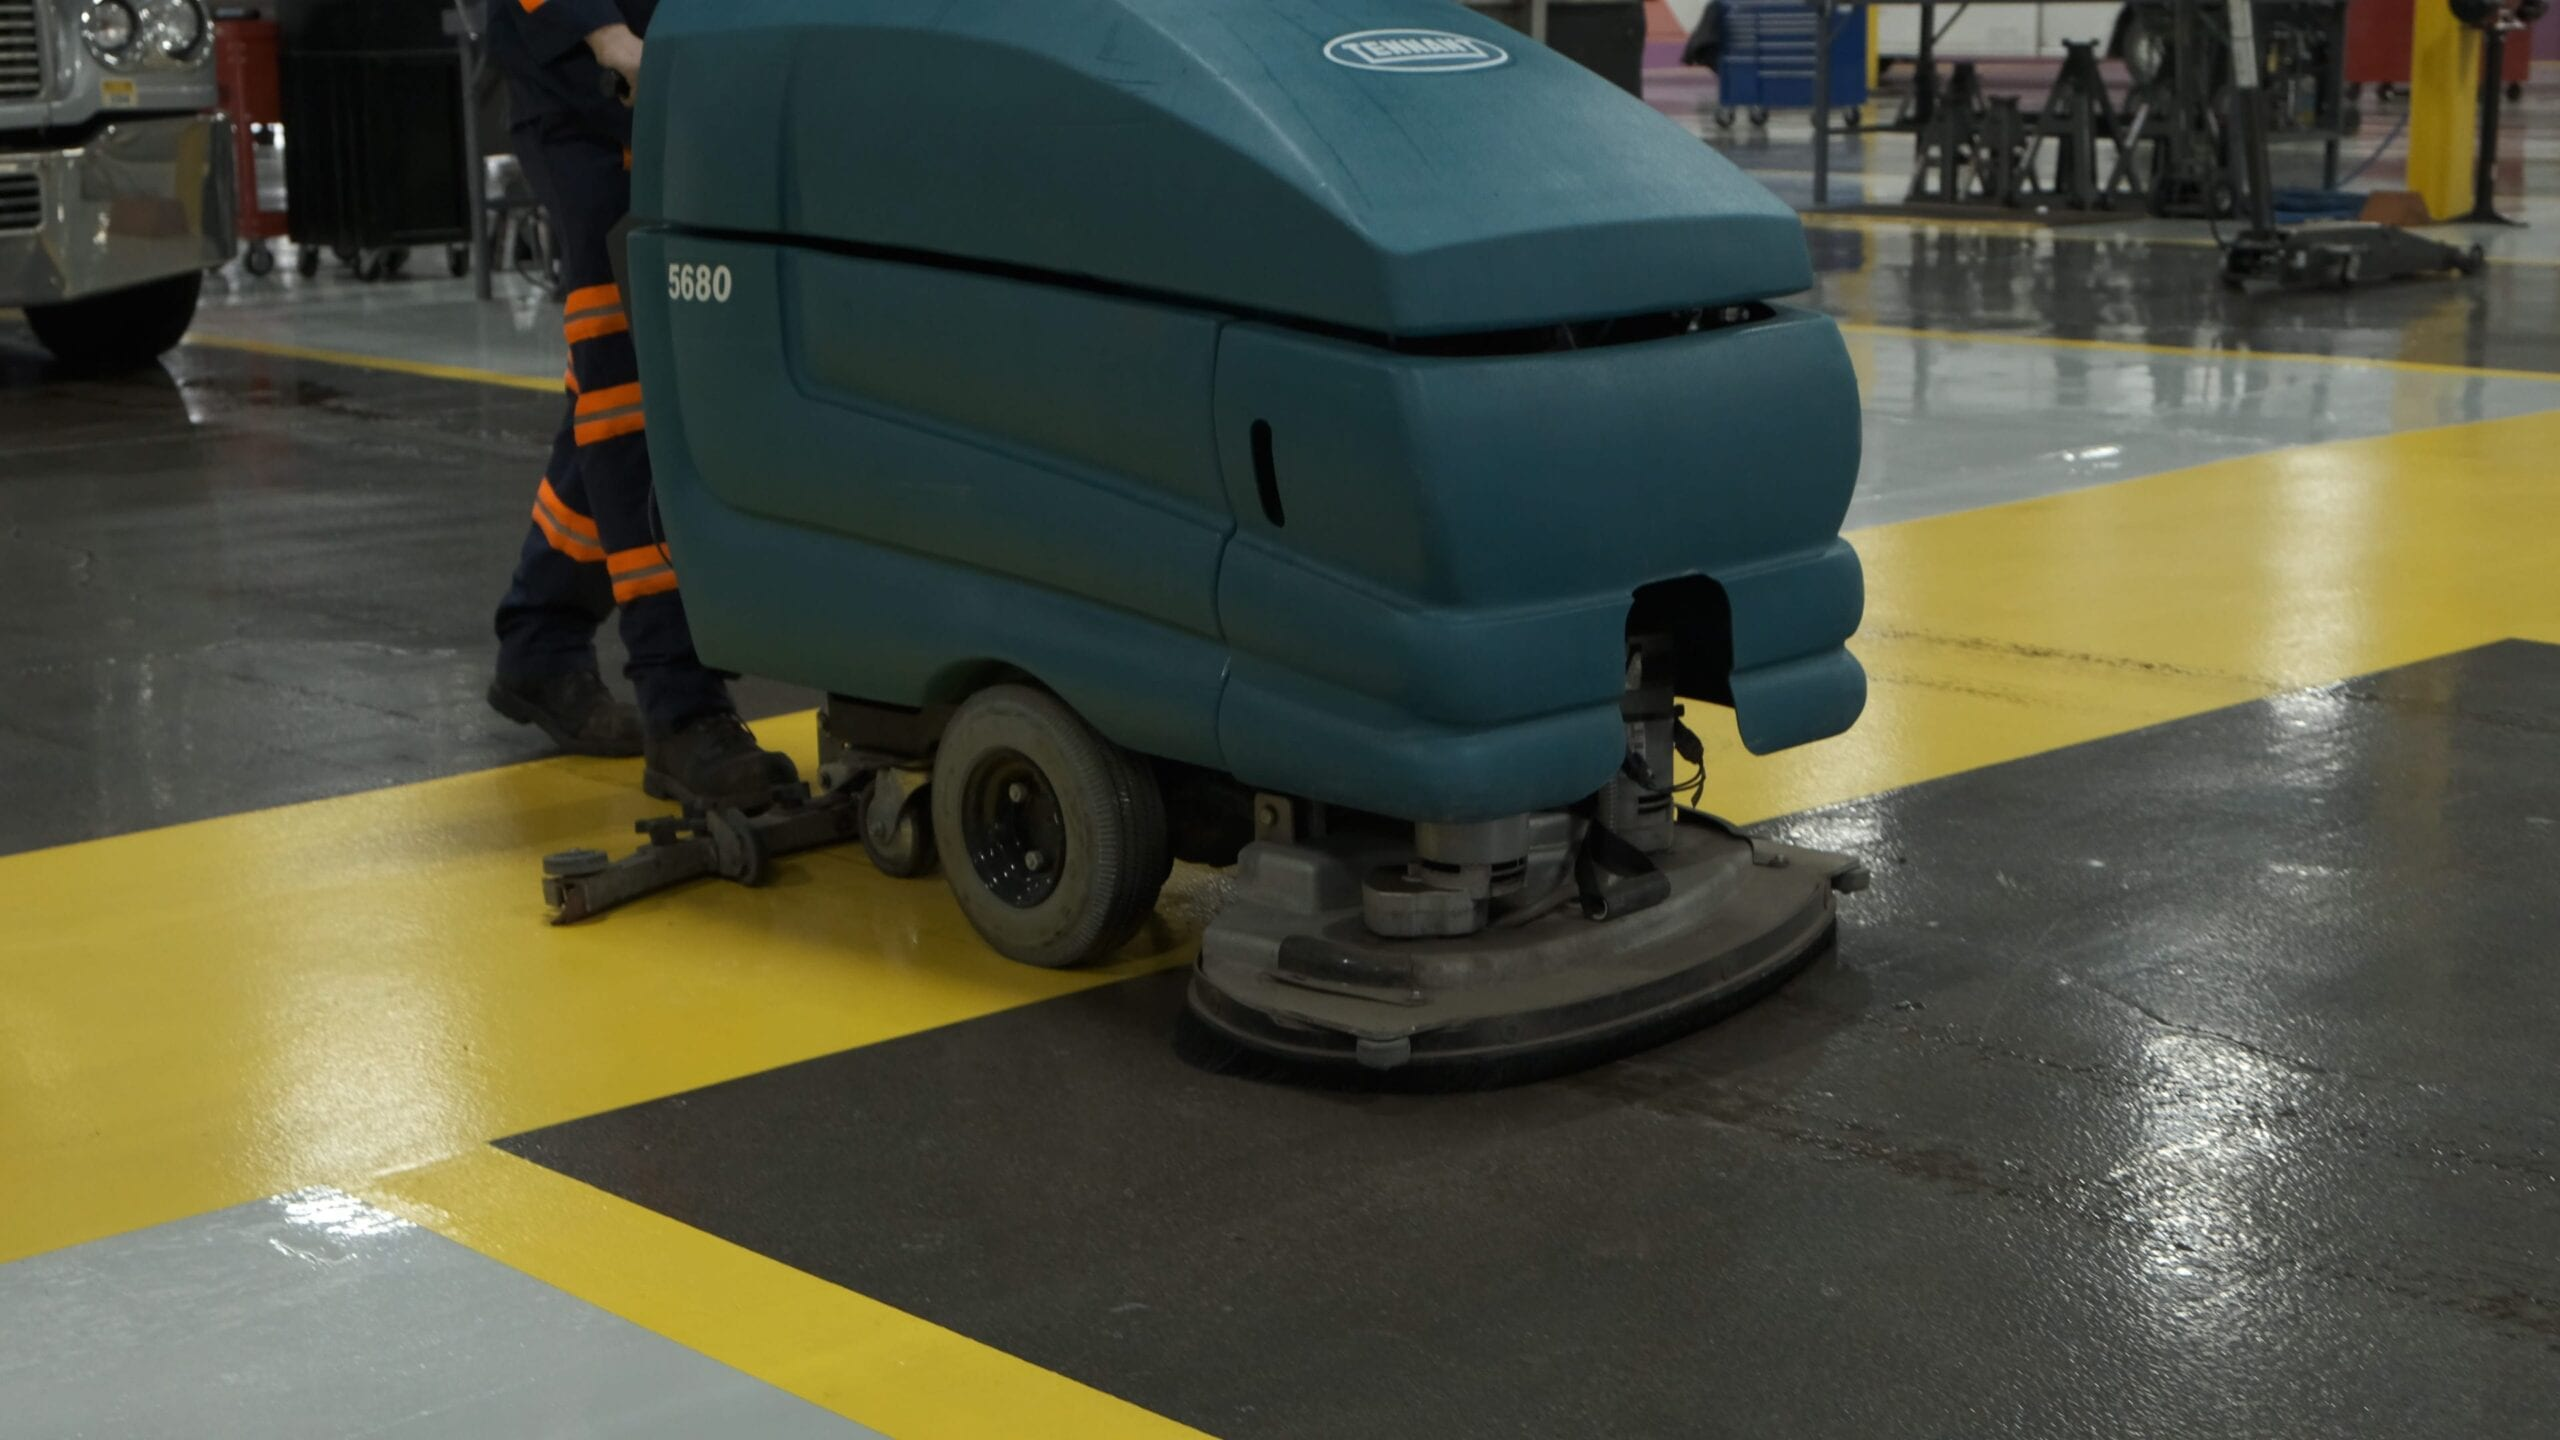 Employee cleaning floor in truck repair shop.